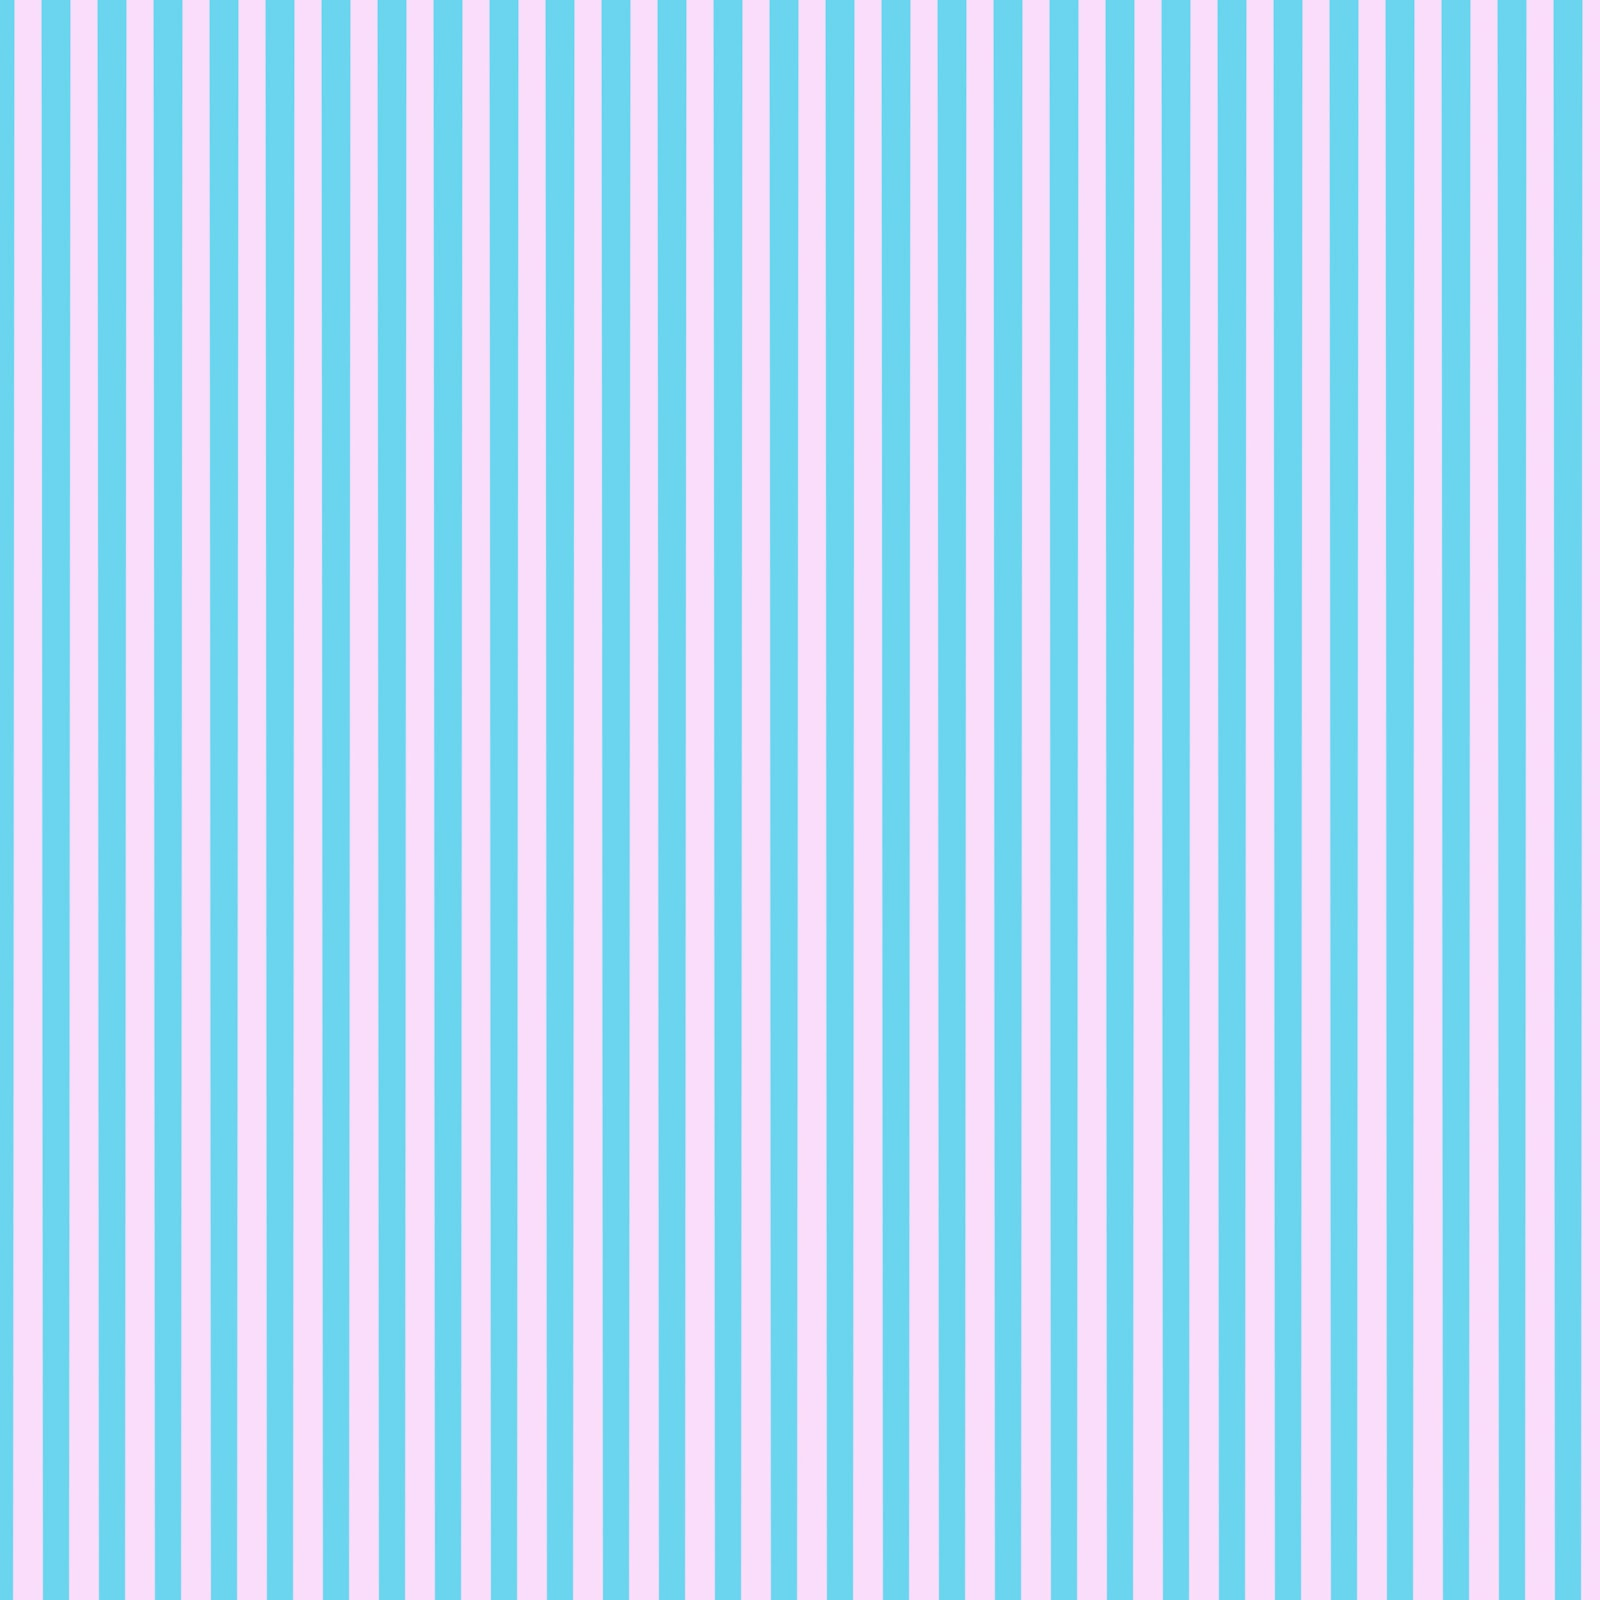 Stampin D'Amour: Free Digital Scrapbook Paper - Pink and Blue Stripes